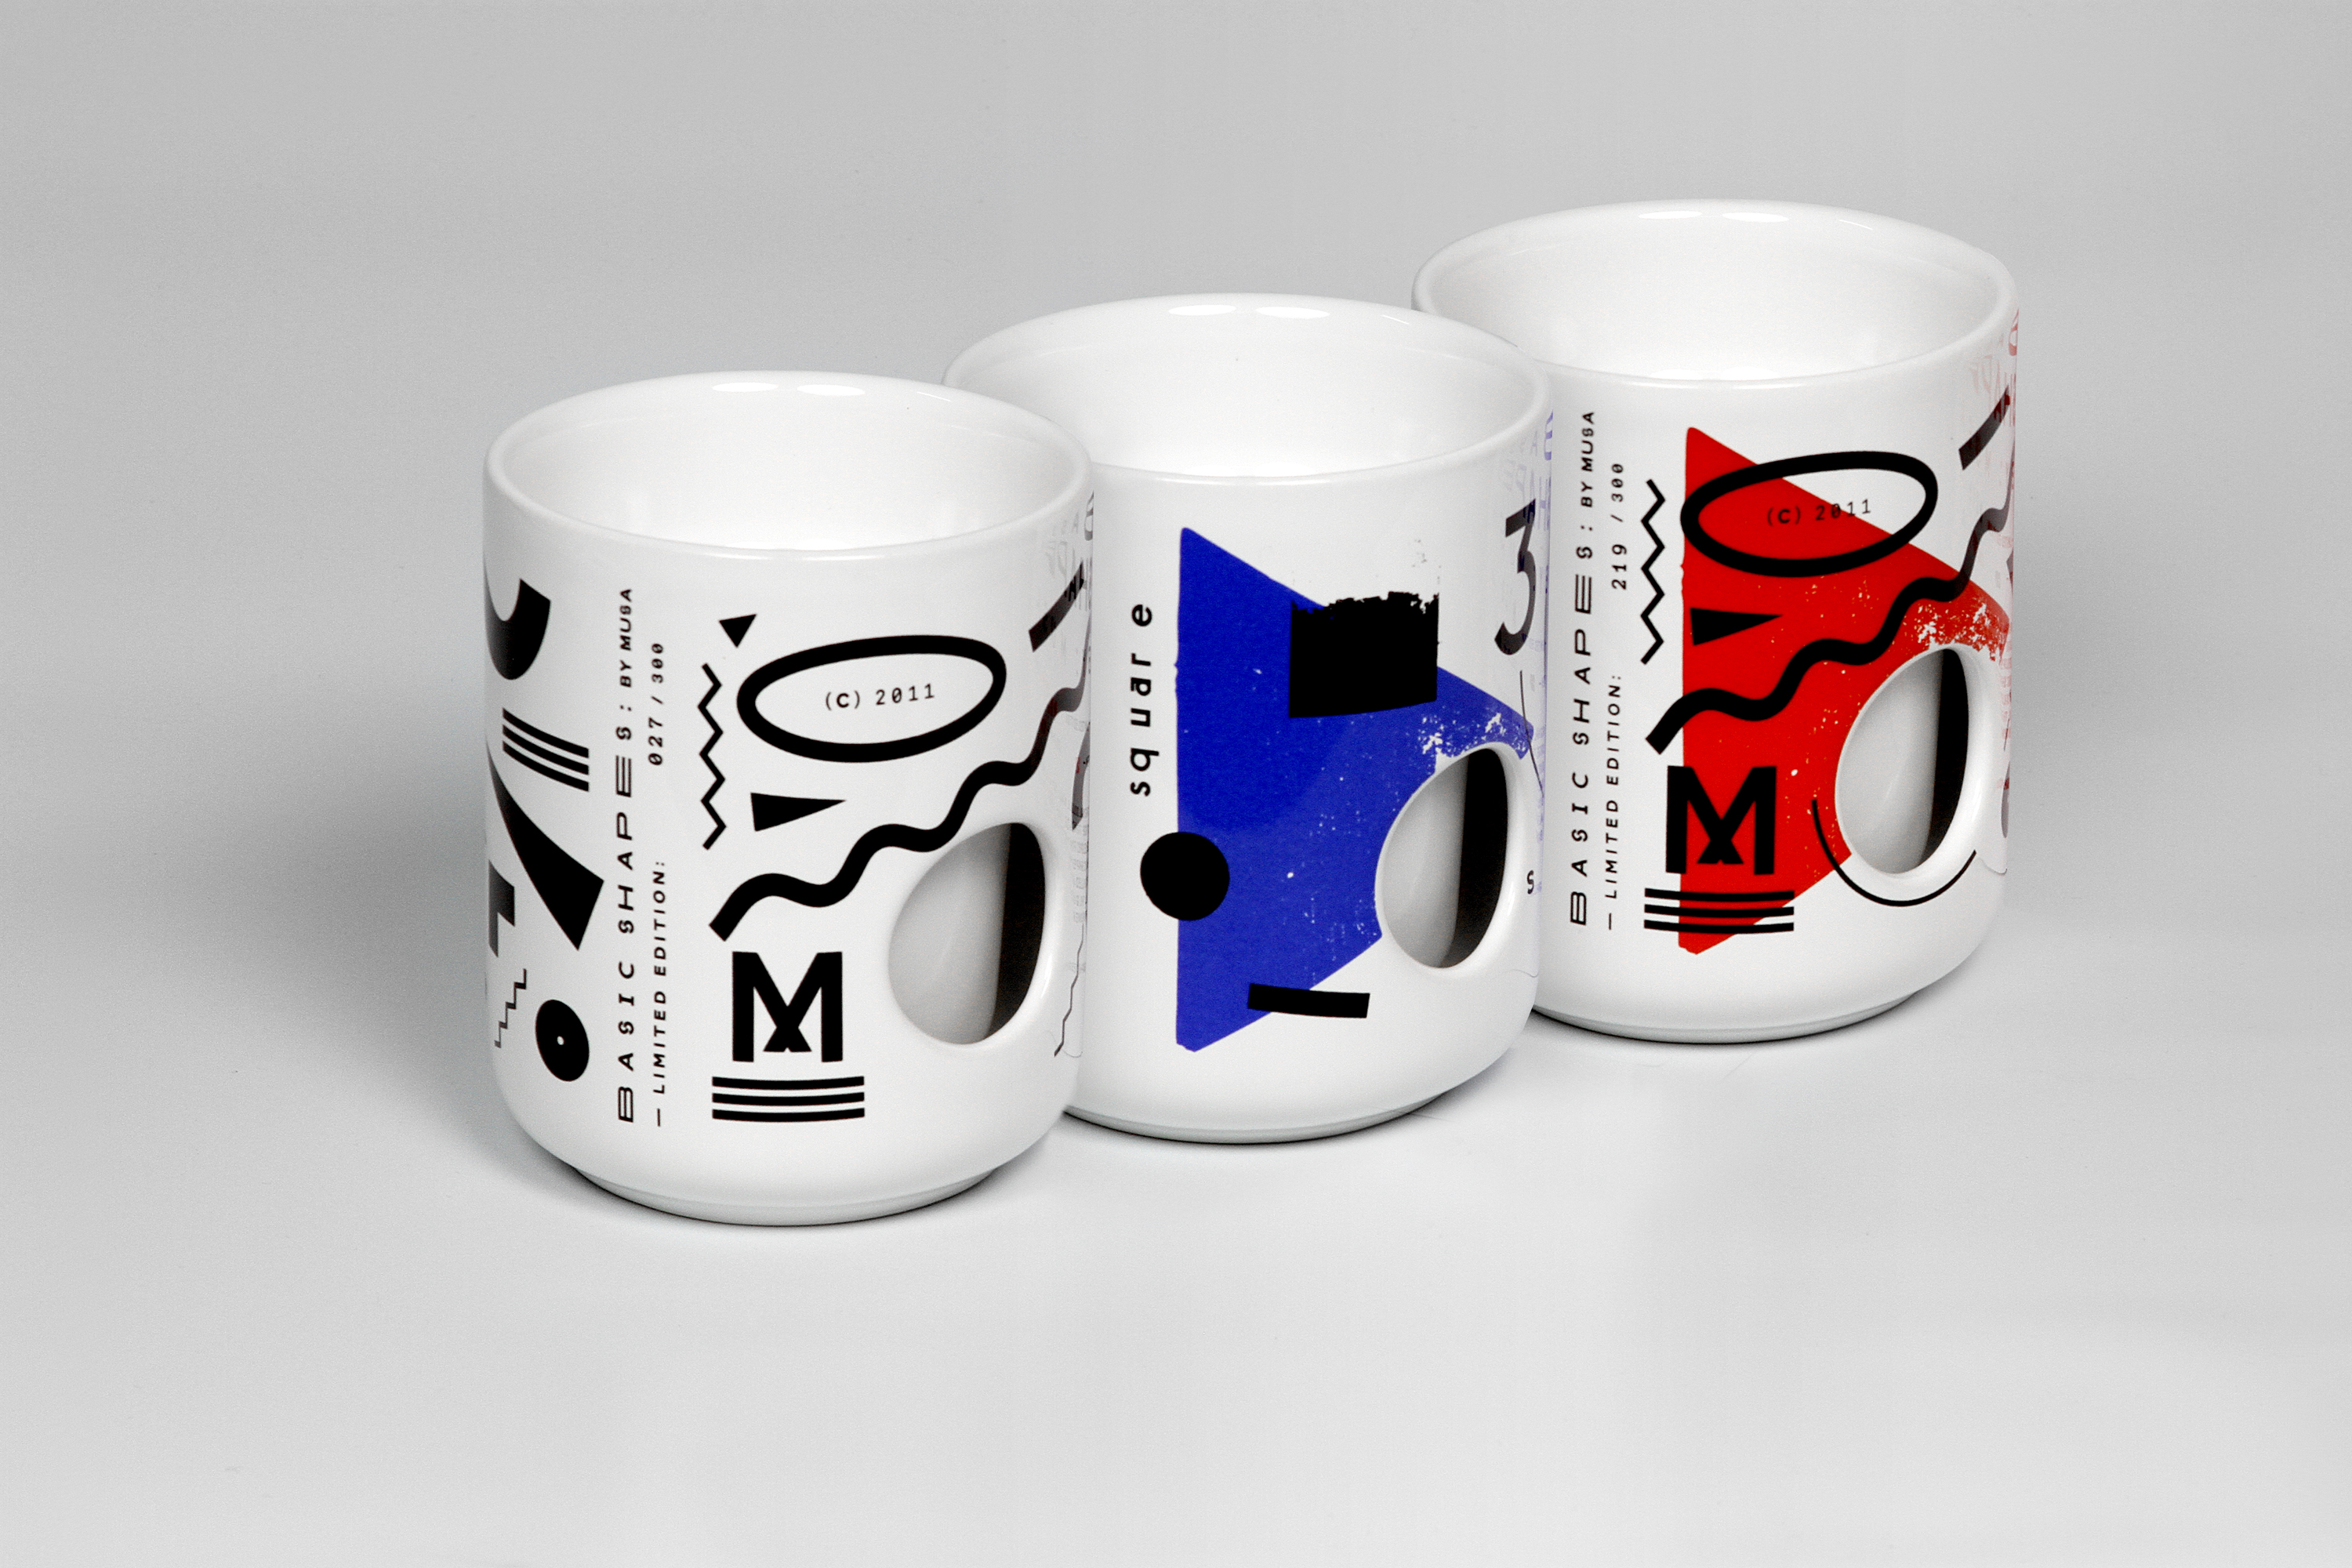 Basic Shapes Limited Edition Cups and Candles by Musa